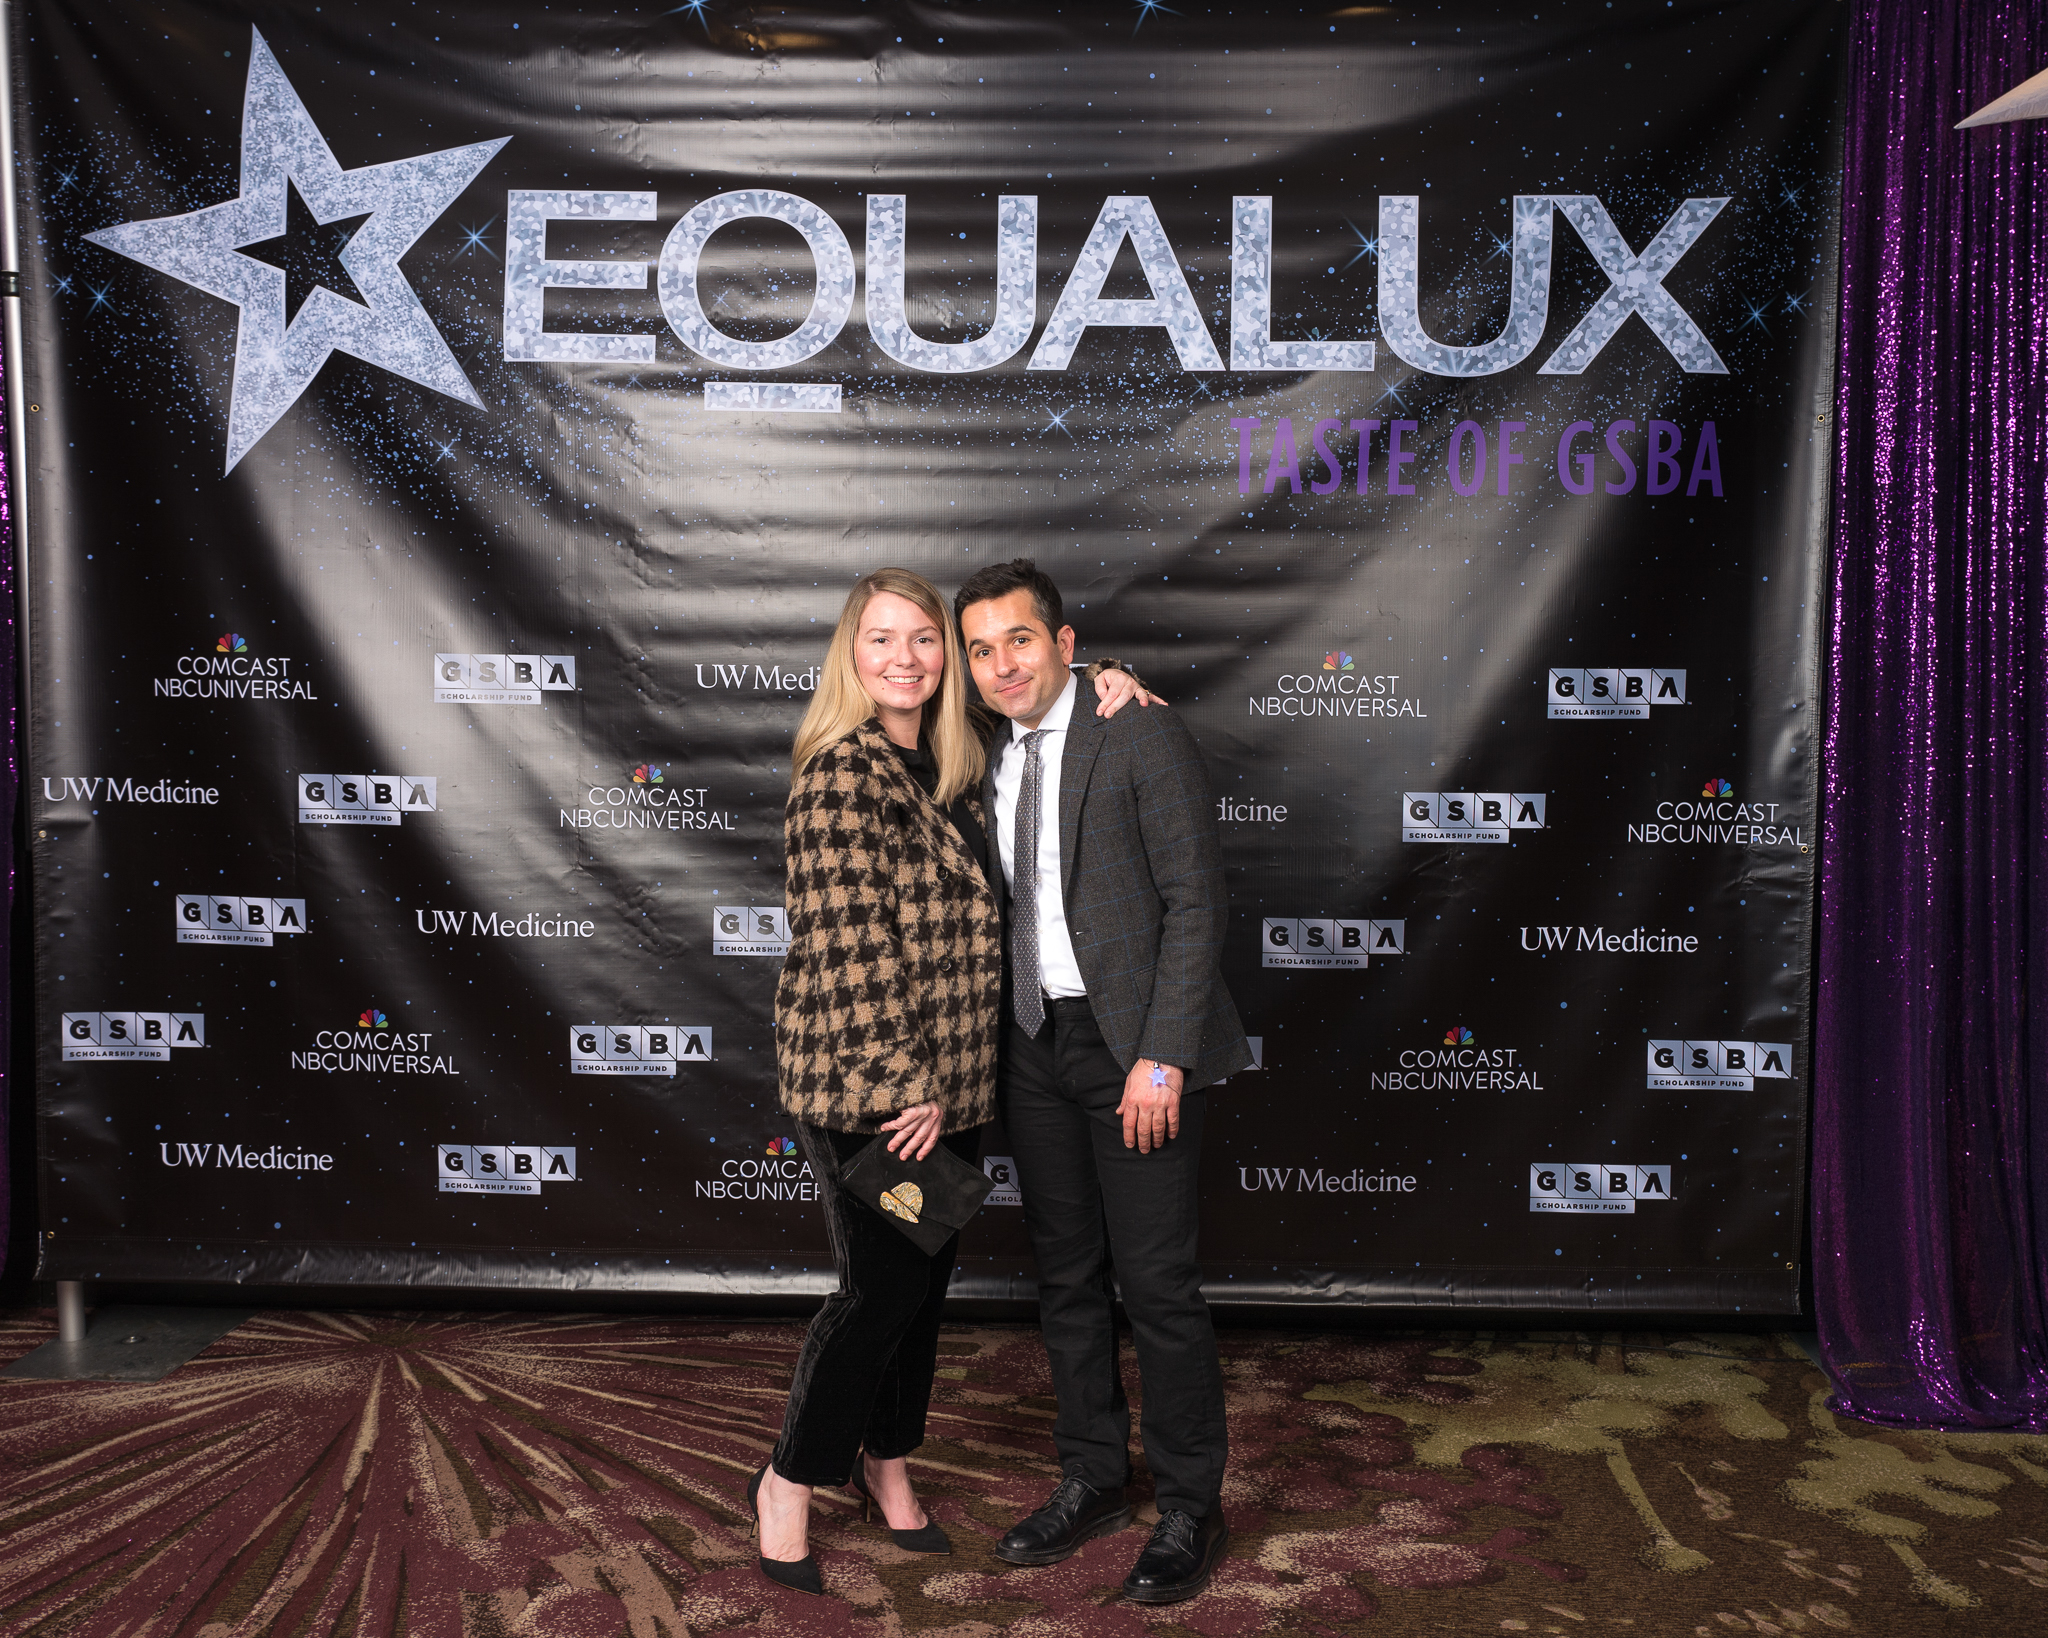 111718_GSBA EQUALUX at The Westin Seattle (Credit- Nate Gowdy)-60.jpg